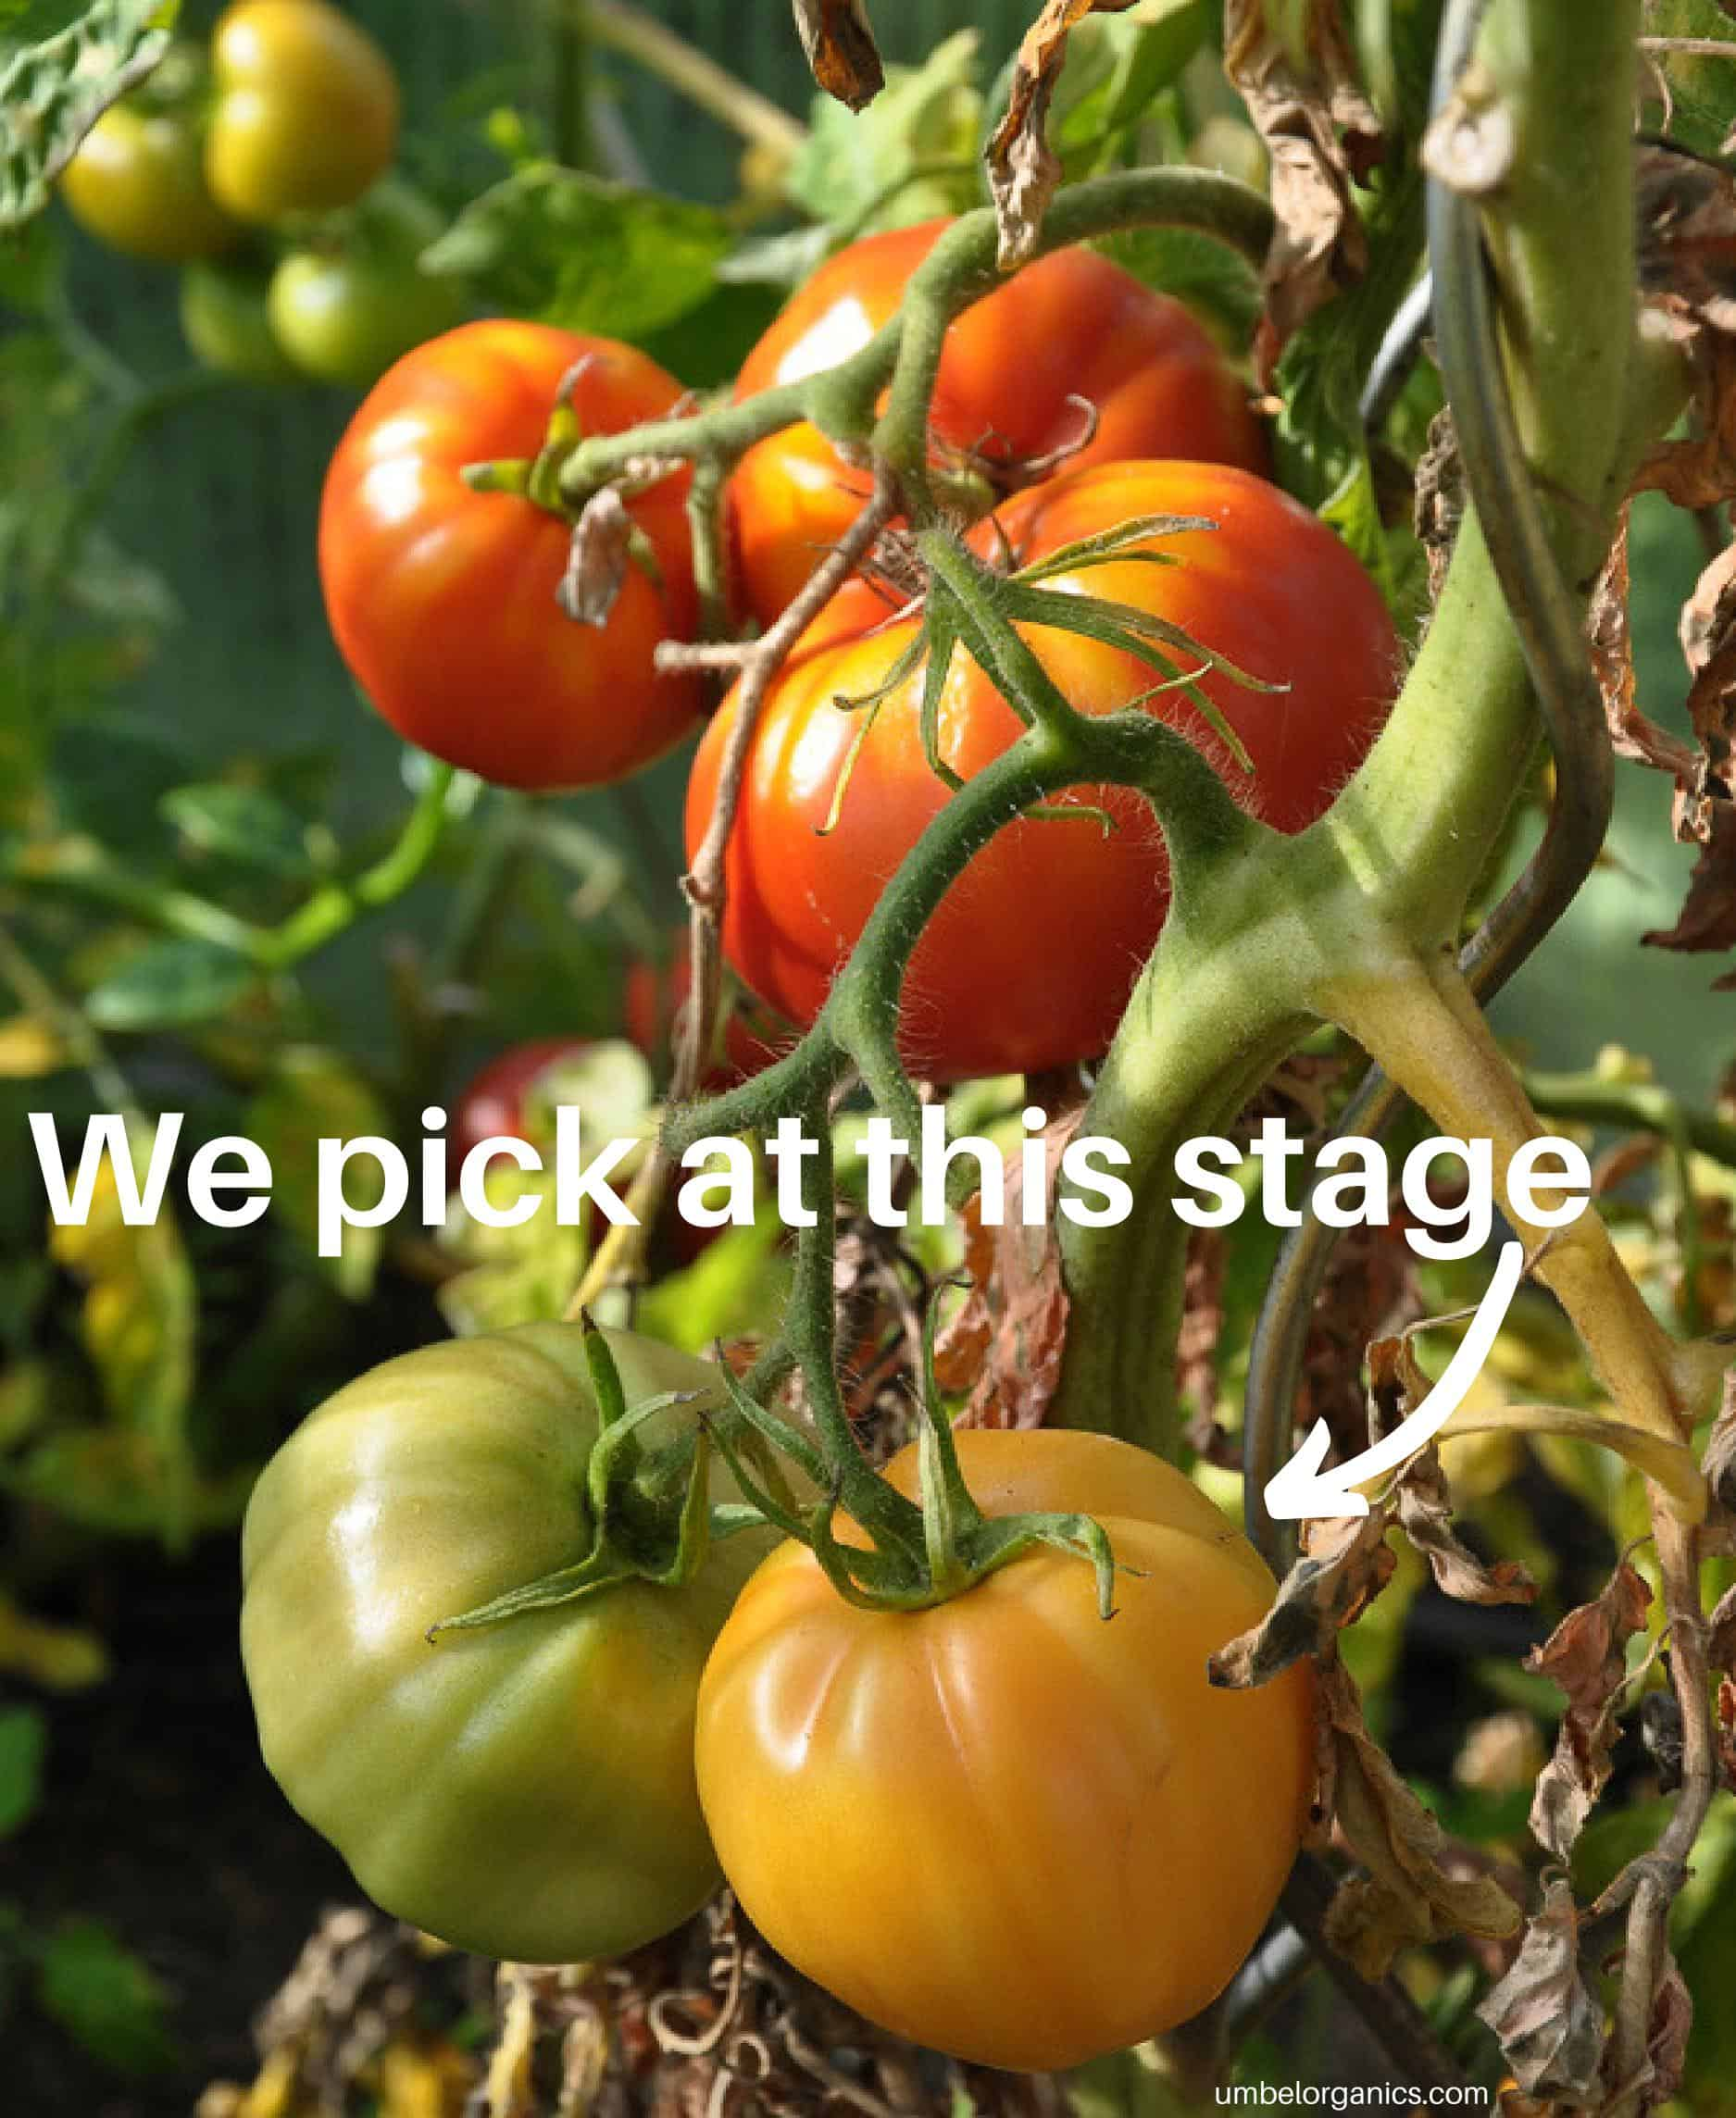 Heirloom tomatoes on vine at different stages of development and color.